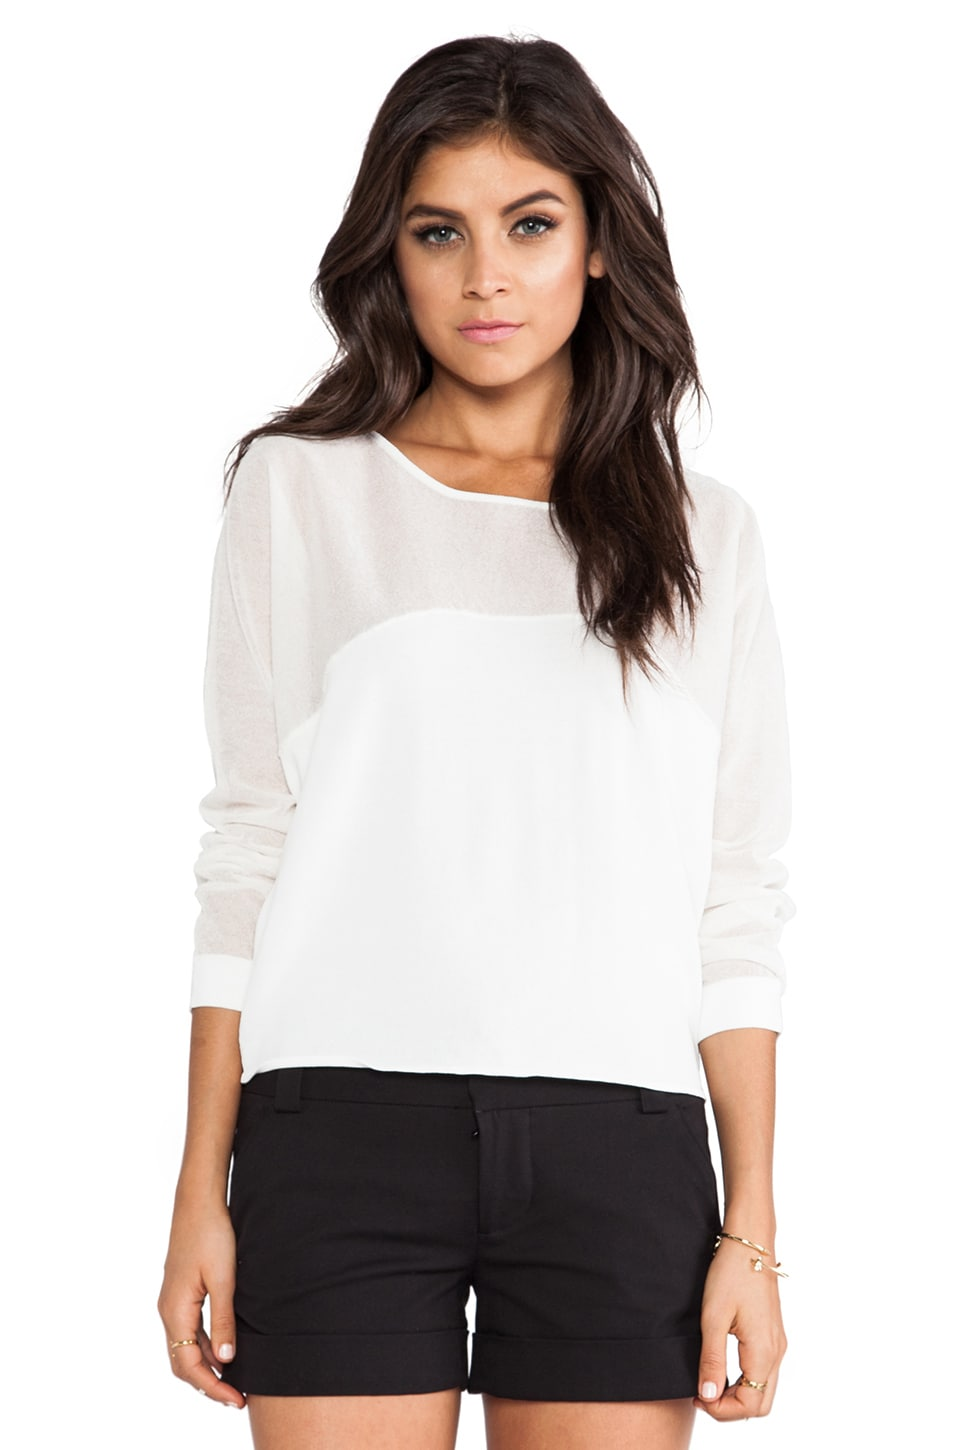 TOWNSEN Half Moon Long Sleeve Top in White